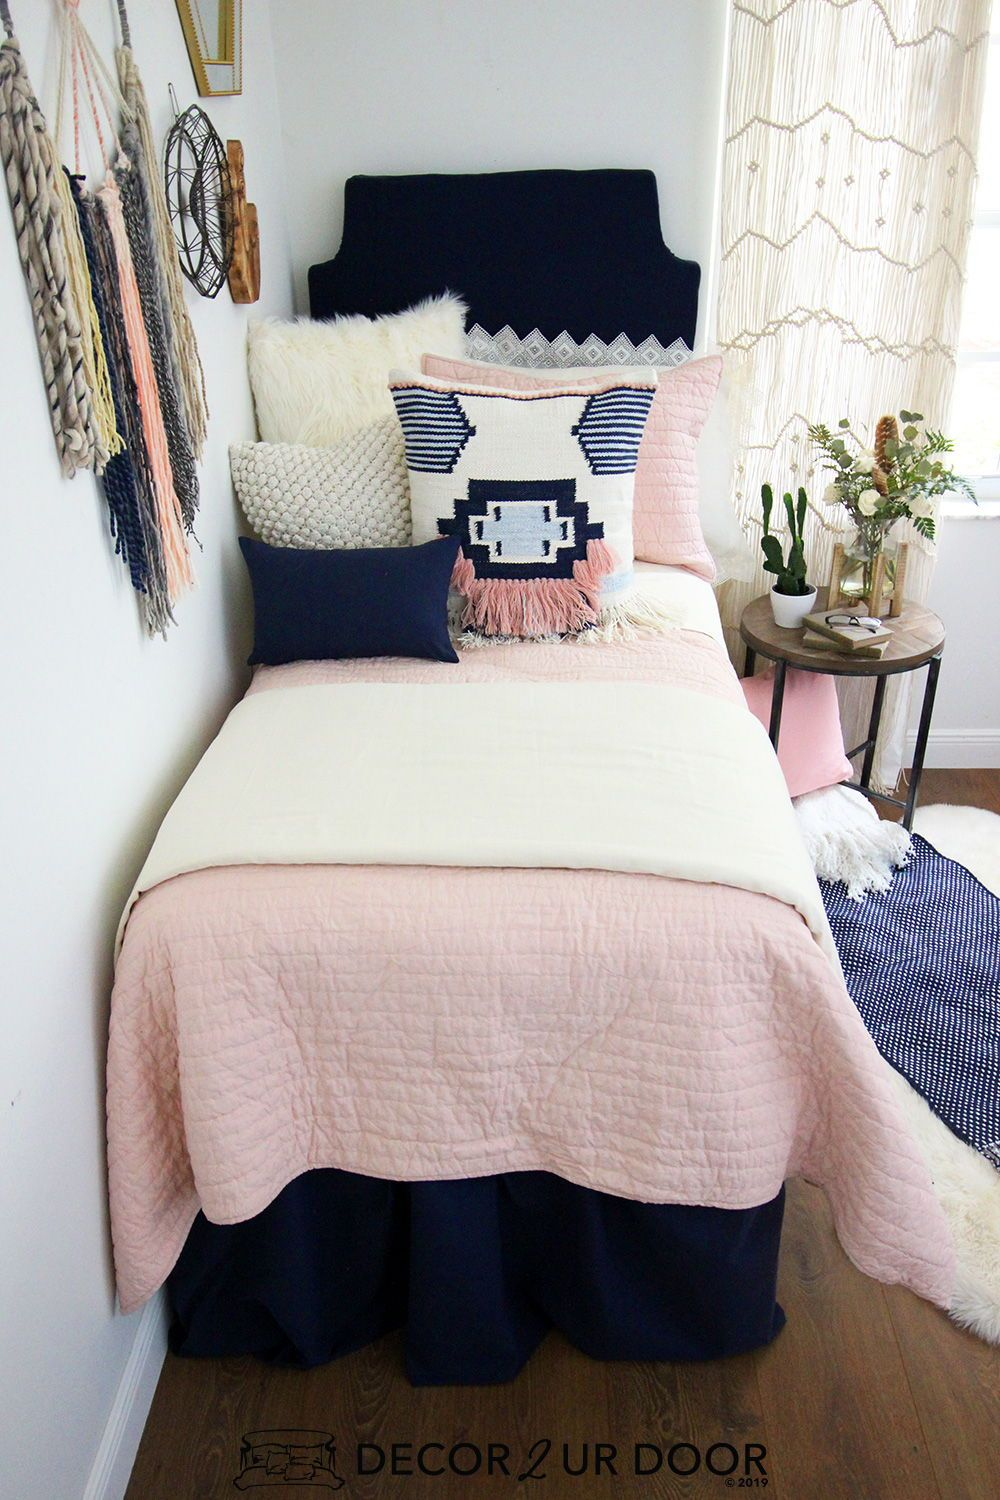 Looking For College Girl Apartment Ideas Check Out This College Apartment Bedding And Decor Collecti Dorm Bedding Sets Designer Dorm Bedding Dorm Room Bedding